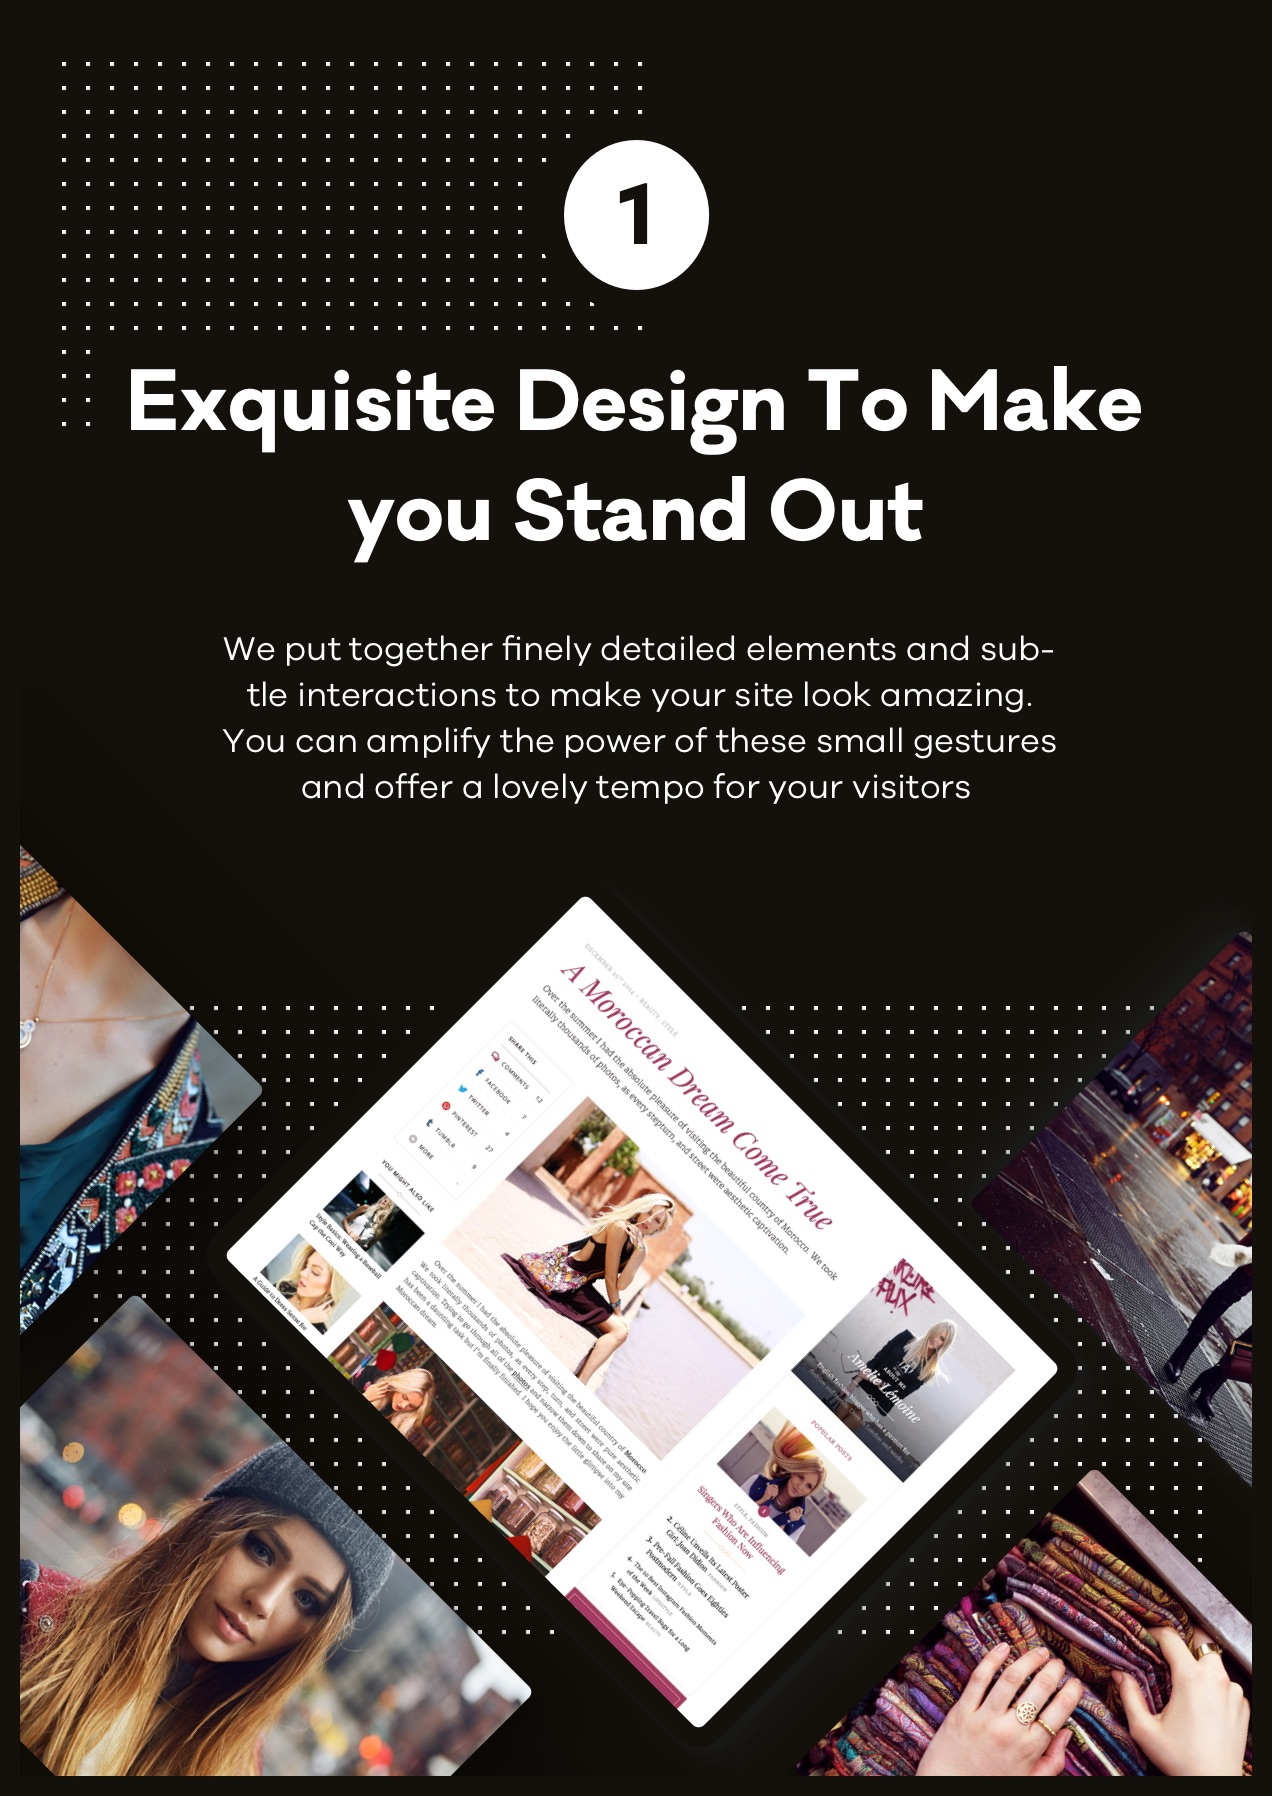 Exquisite Design to Make you Stand Out